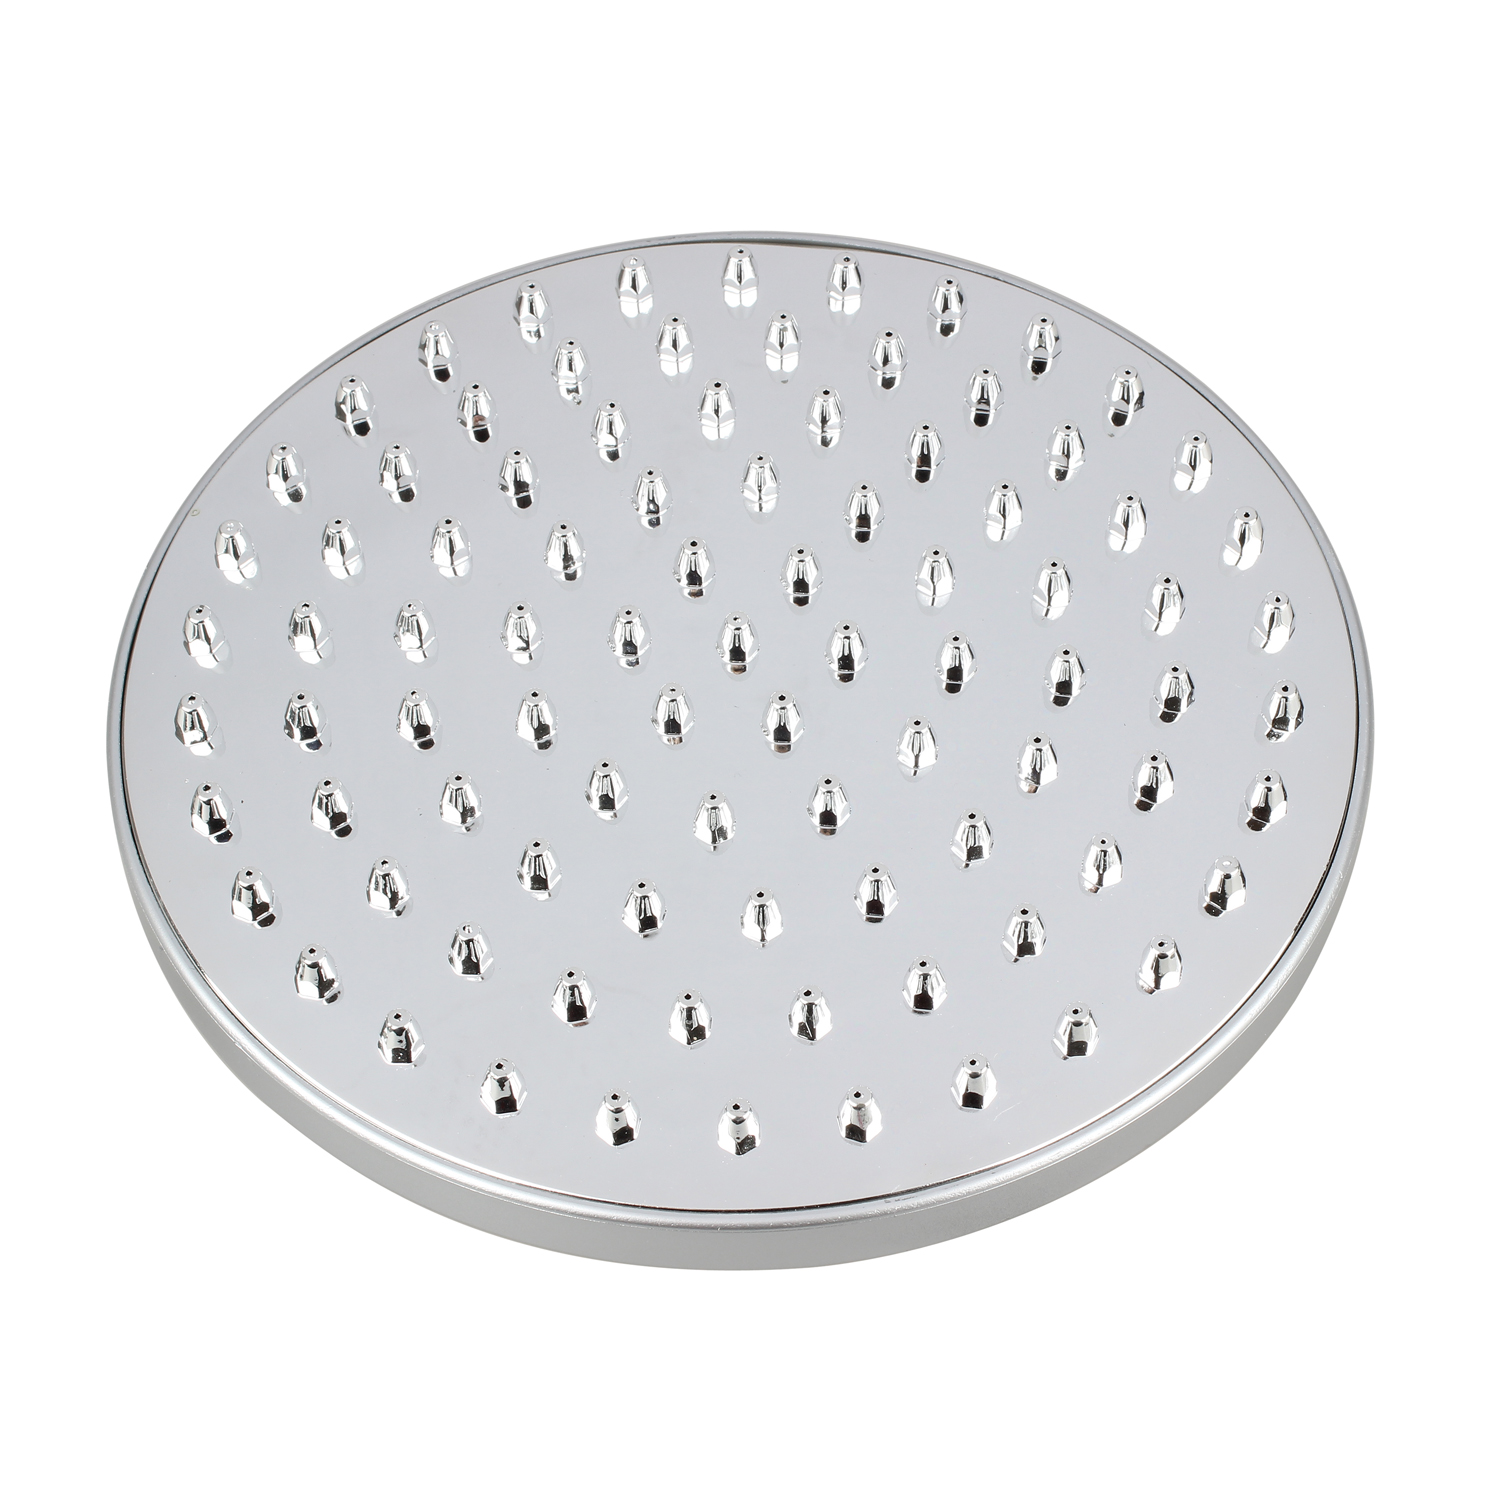 Hot Sale UK Send 8 Inch Bathroom Room Chrome Large Round Mixer Fix Rain Shower Head 200mm